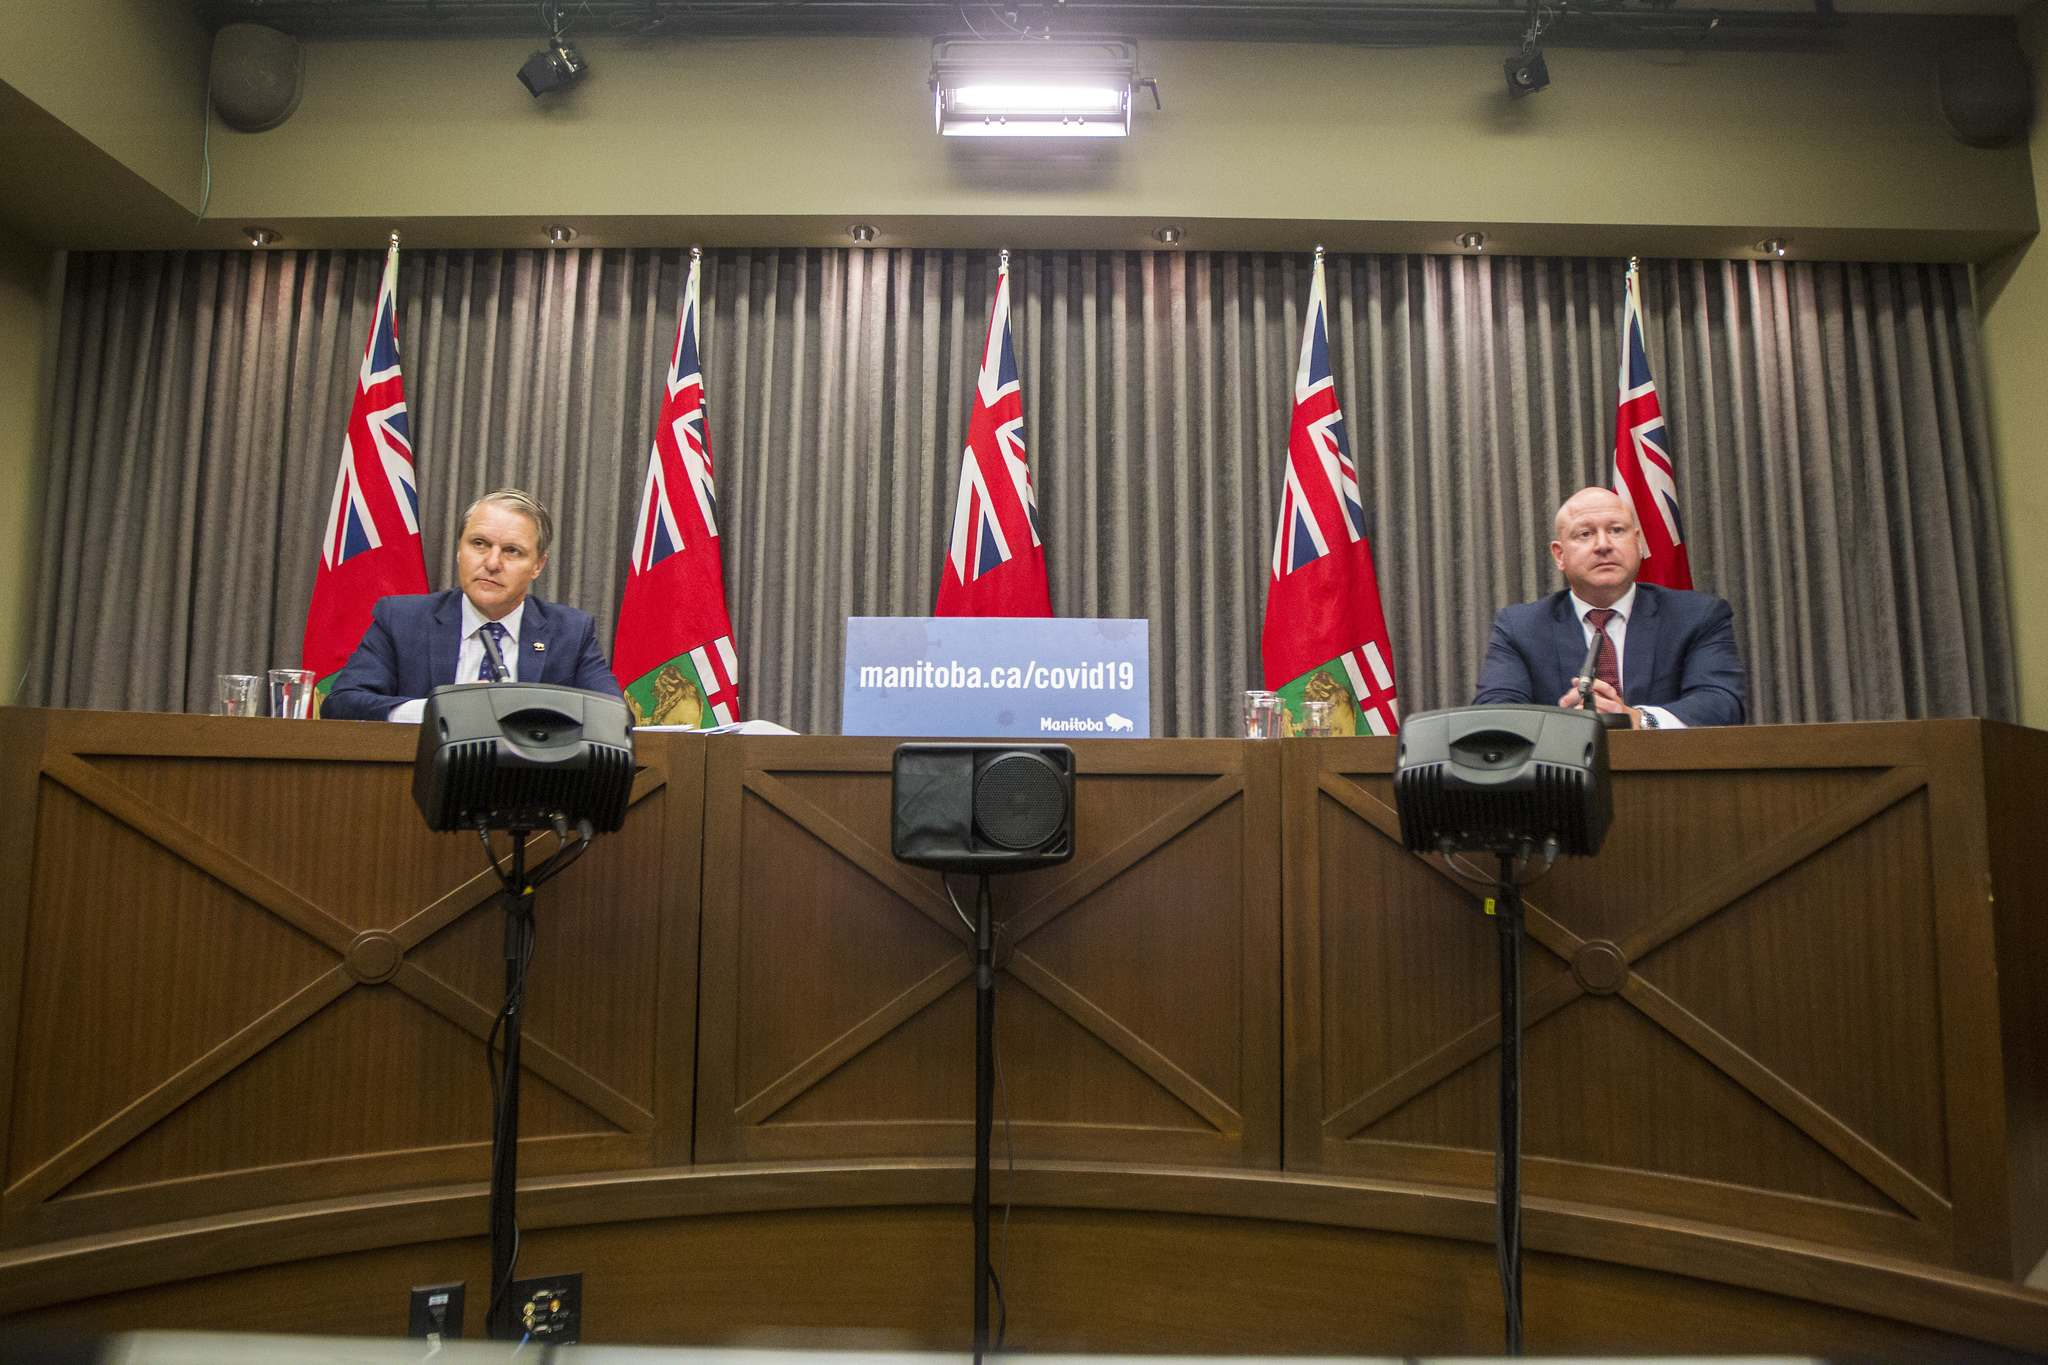 Chief public health officer Dr. Brent Roussin and Health, Seniors and Active Living Minister Cameron Friesen speak to the media at the Manitoba Legislative Building in Winnipeg on Monday. (Winnipeg Free Press)</p></p>